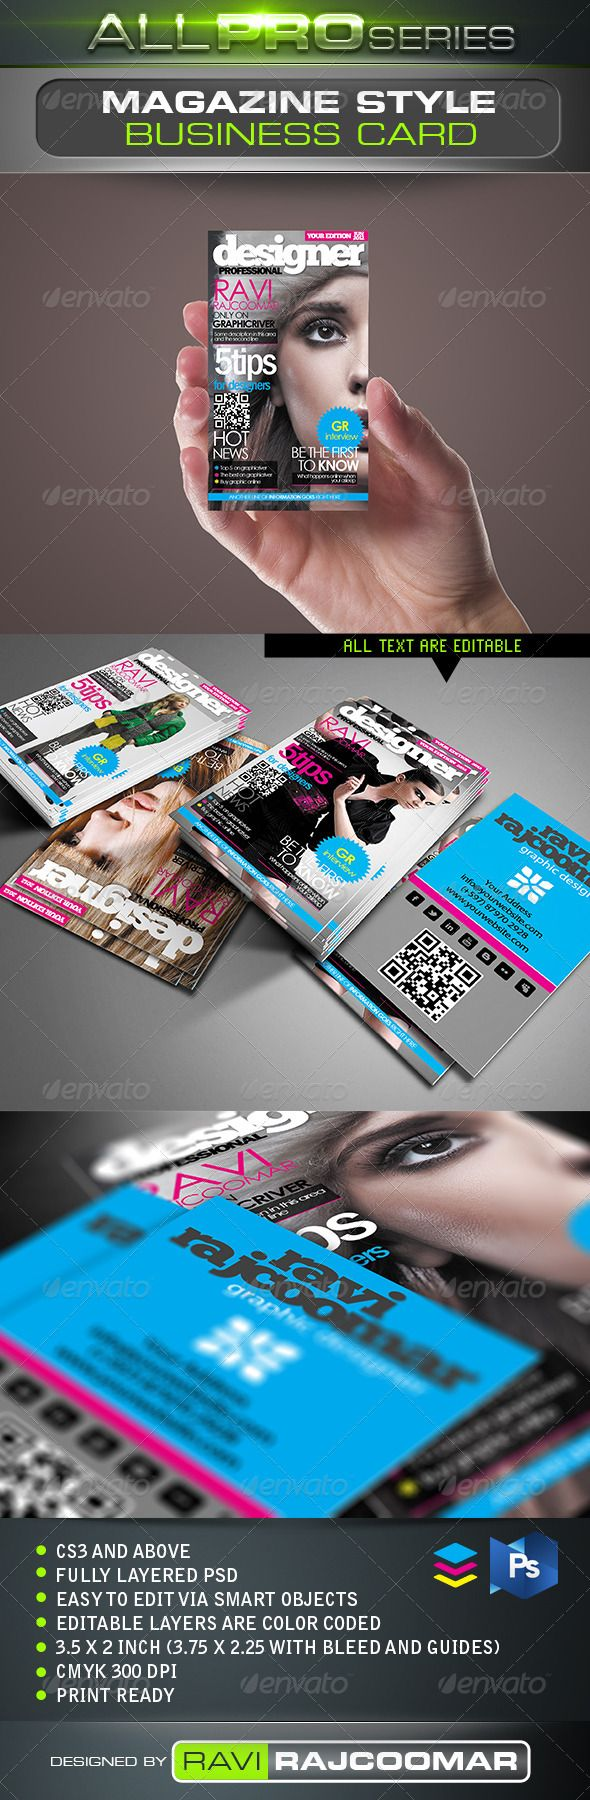 Magazine Style Business Card   Business cards, Print templates and Fonts